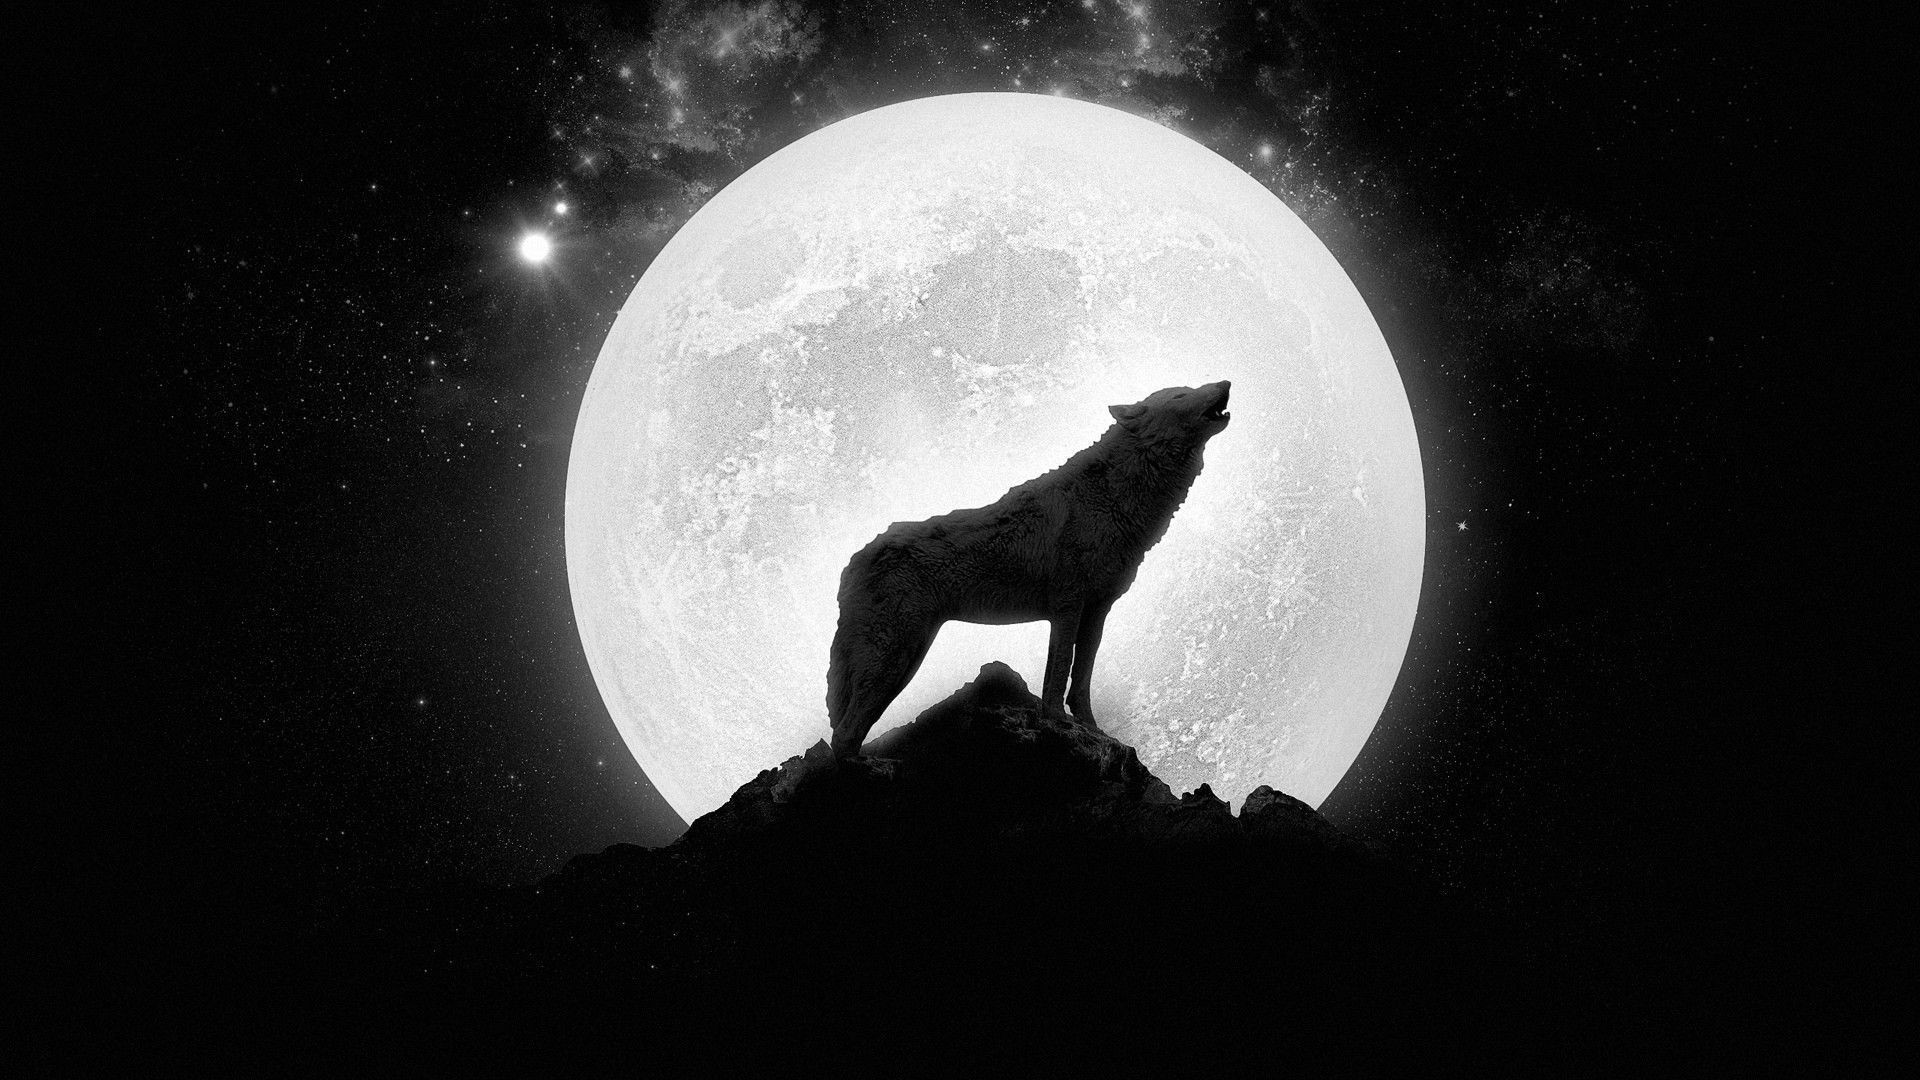 werewolf hd wallpaper